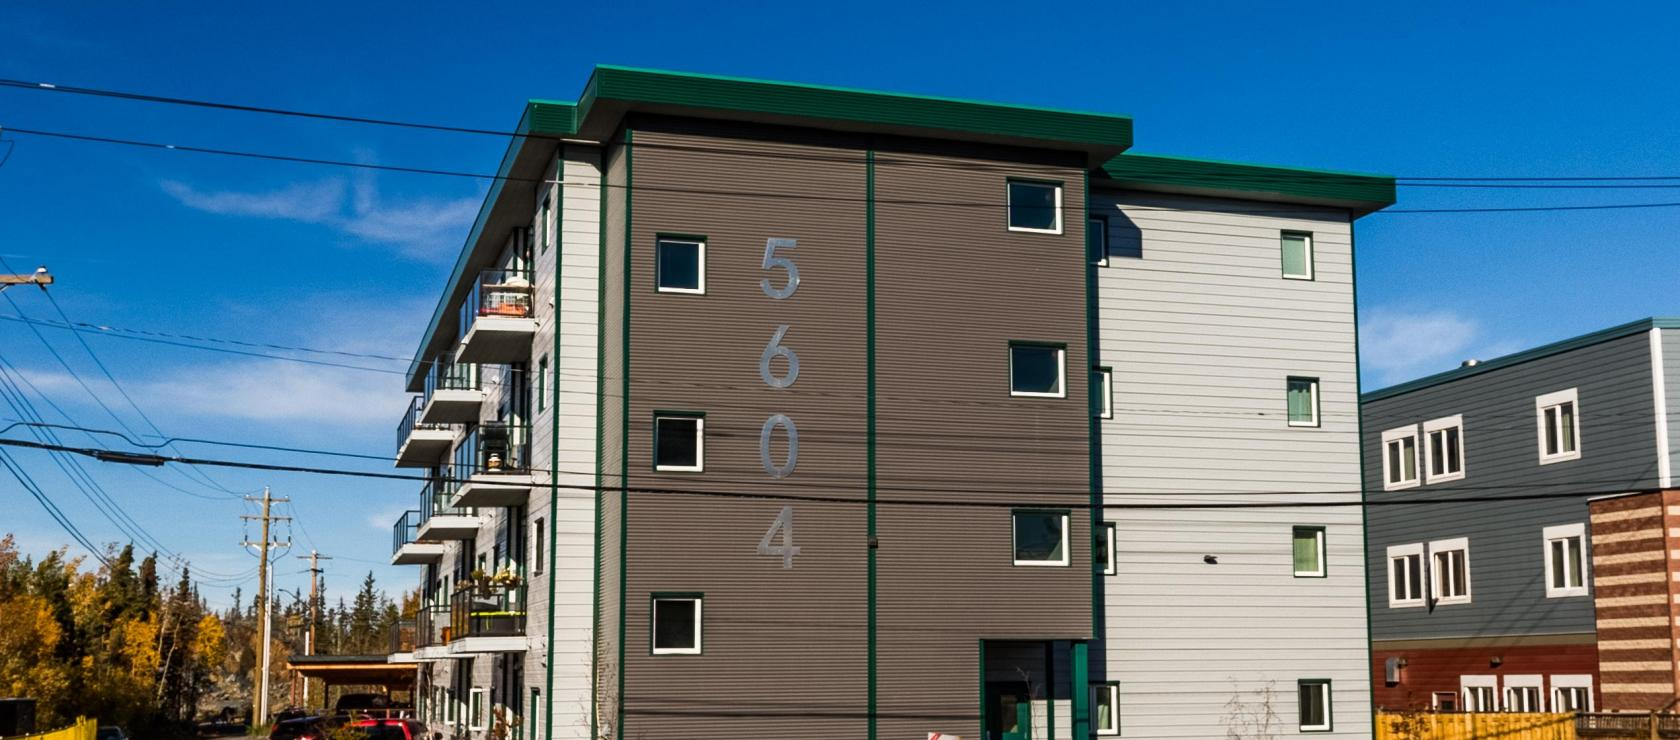 201 - 5604 50 Avenue, Downtown, Yellowknife 2